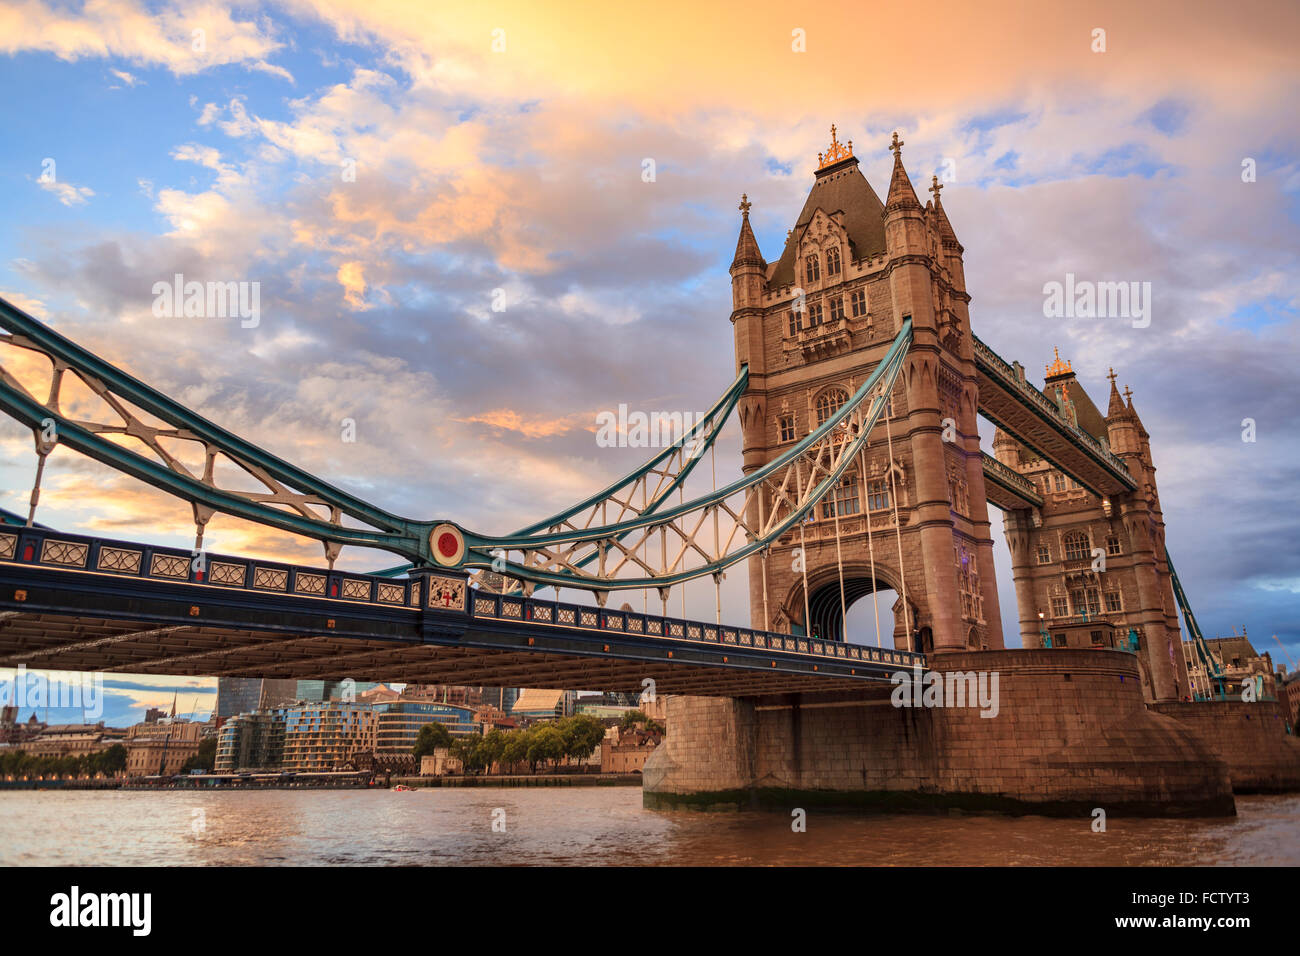 Tower Bridge at orange Sunset, London - Stock Image